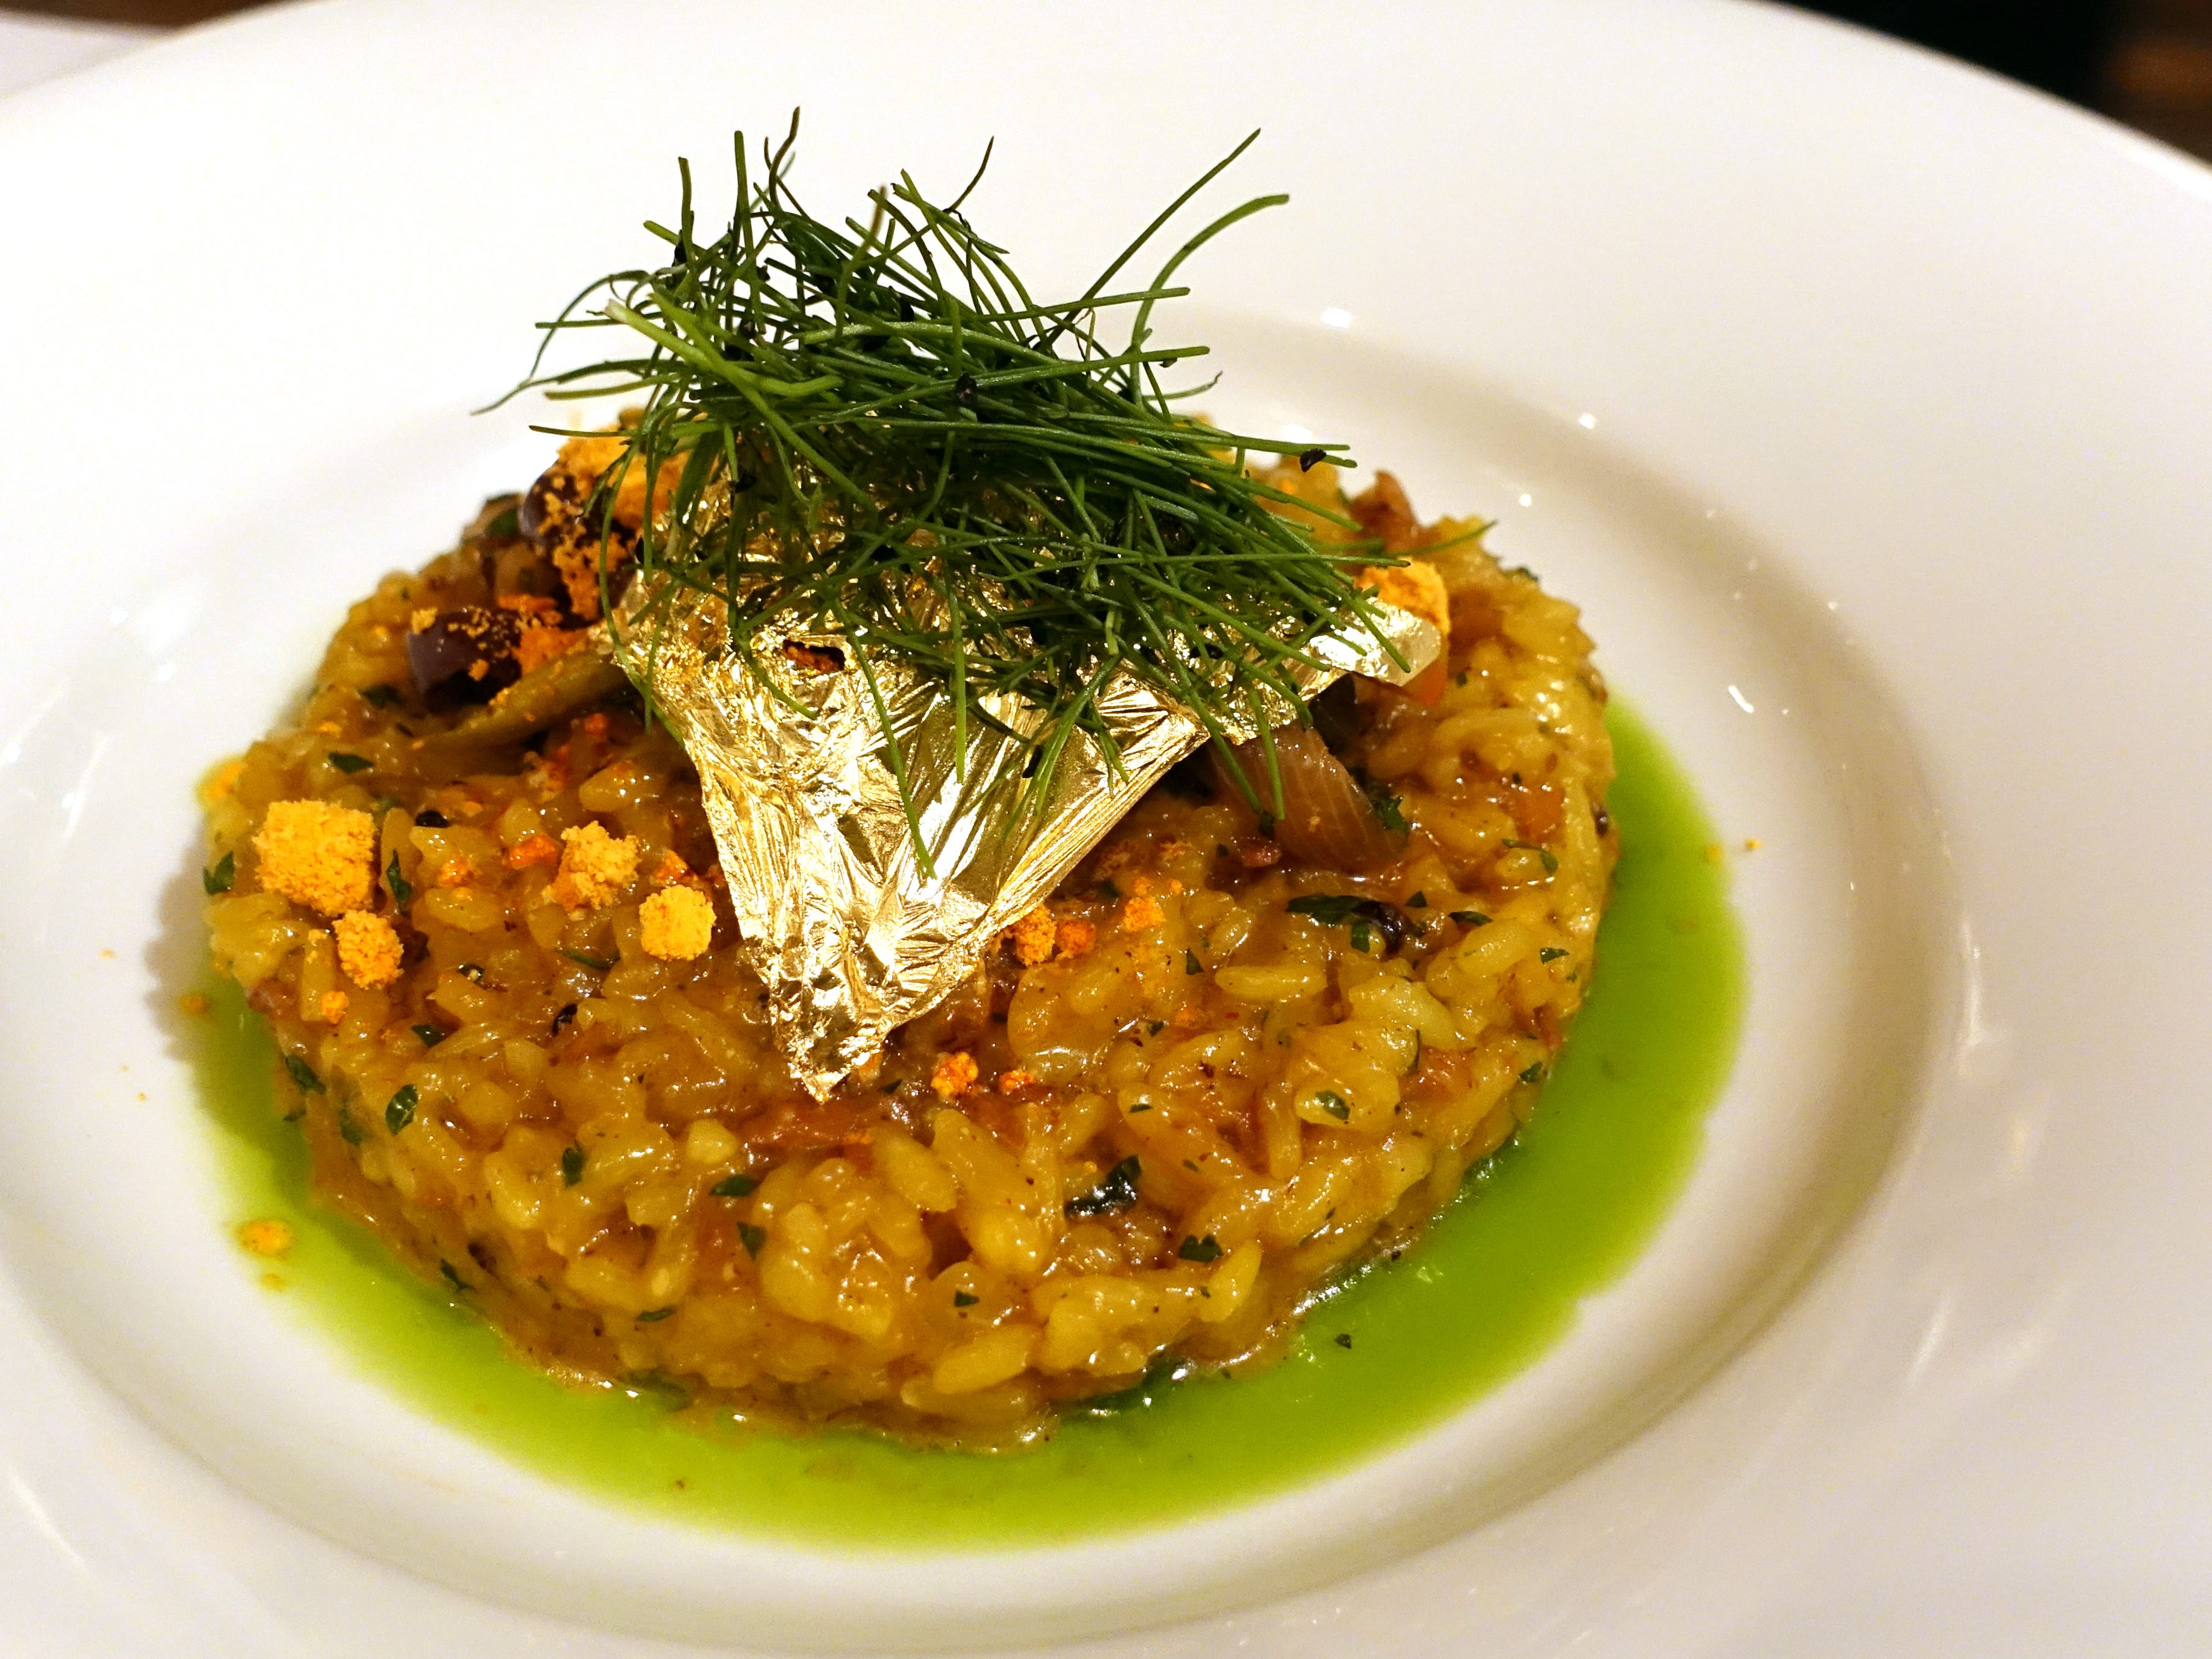 Saffron chorizo risotto with saffron peppers, olives and herb oil at Casa Terra in Glendale.